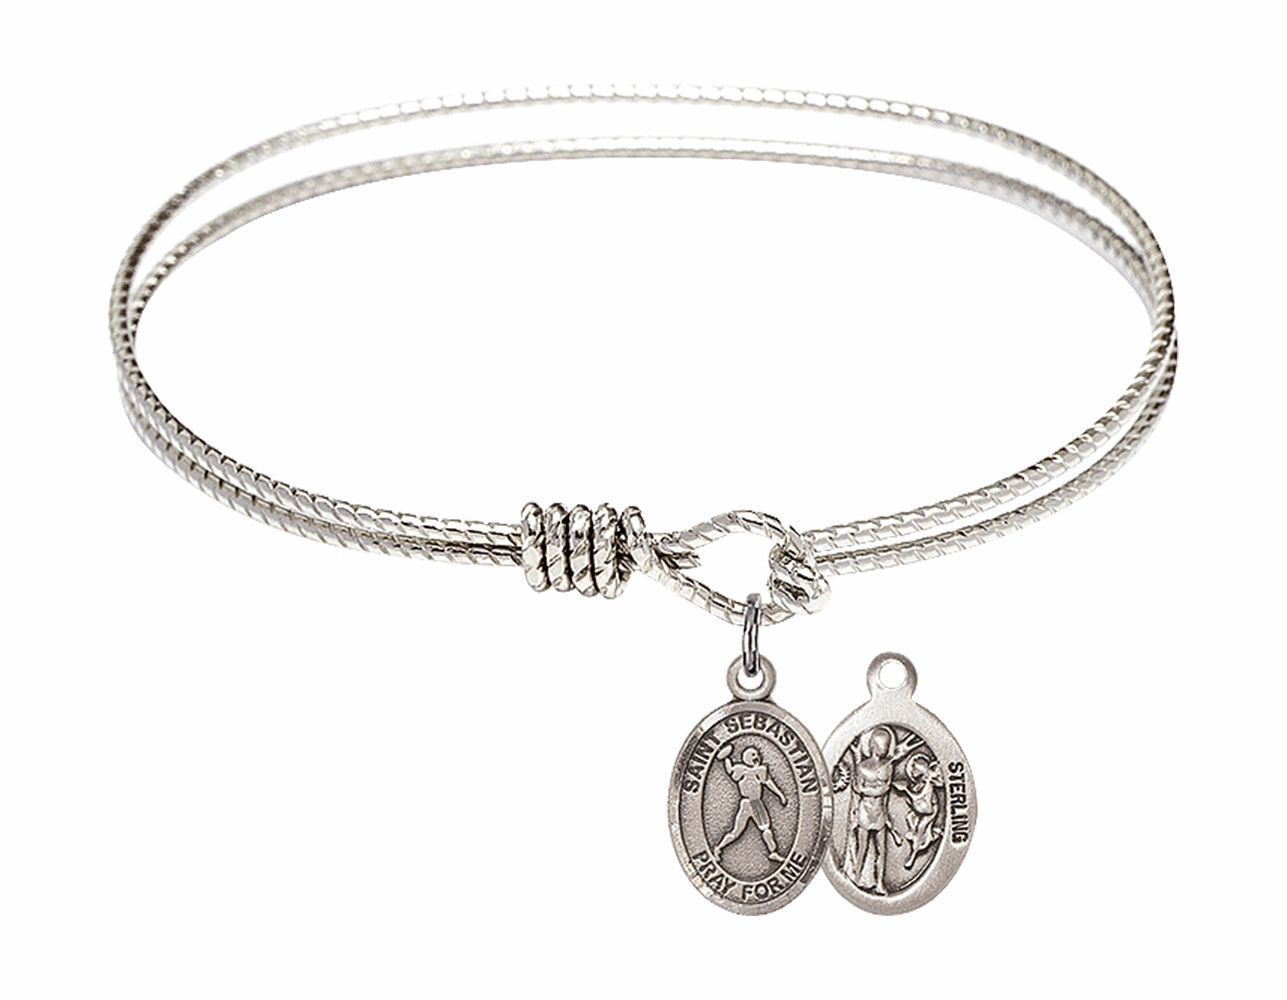 Twist Round Eye Hook St Sebastian Football Bangle Charm Bracelet by Bliss